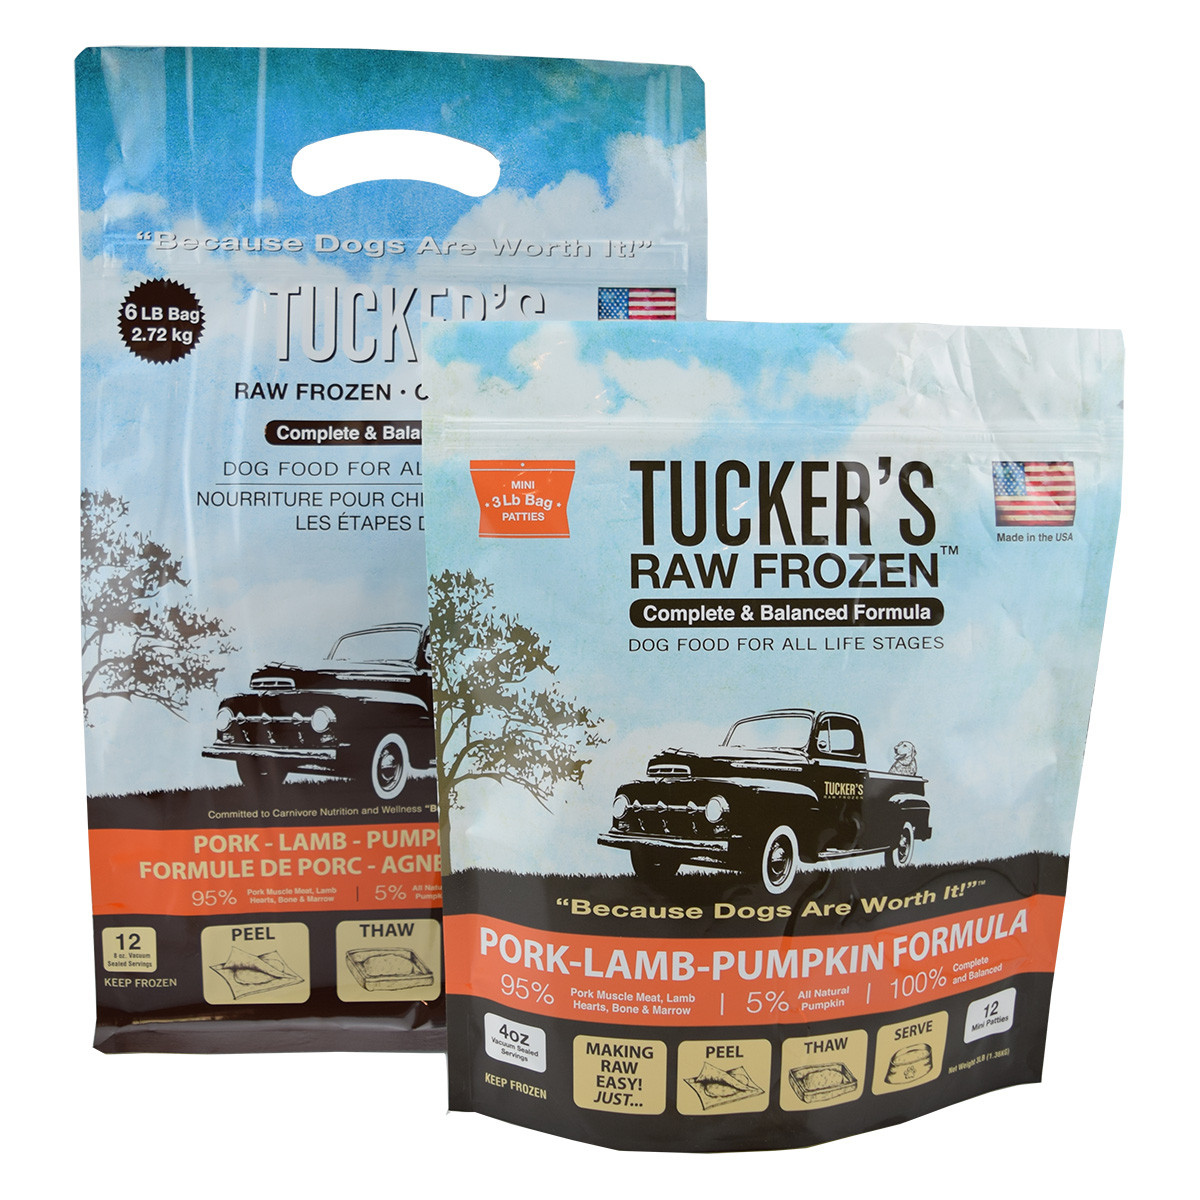 click here to shop Tucker's Raw Frozen Pork-Lamb-Pumpkin Dog Food